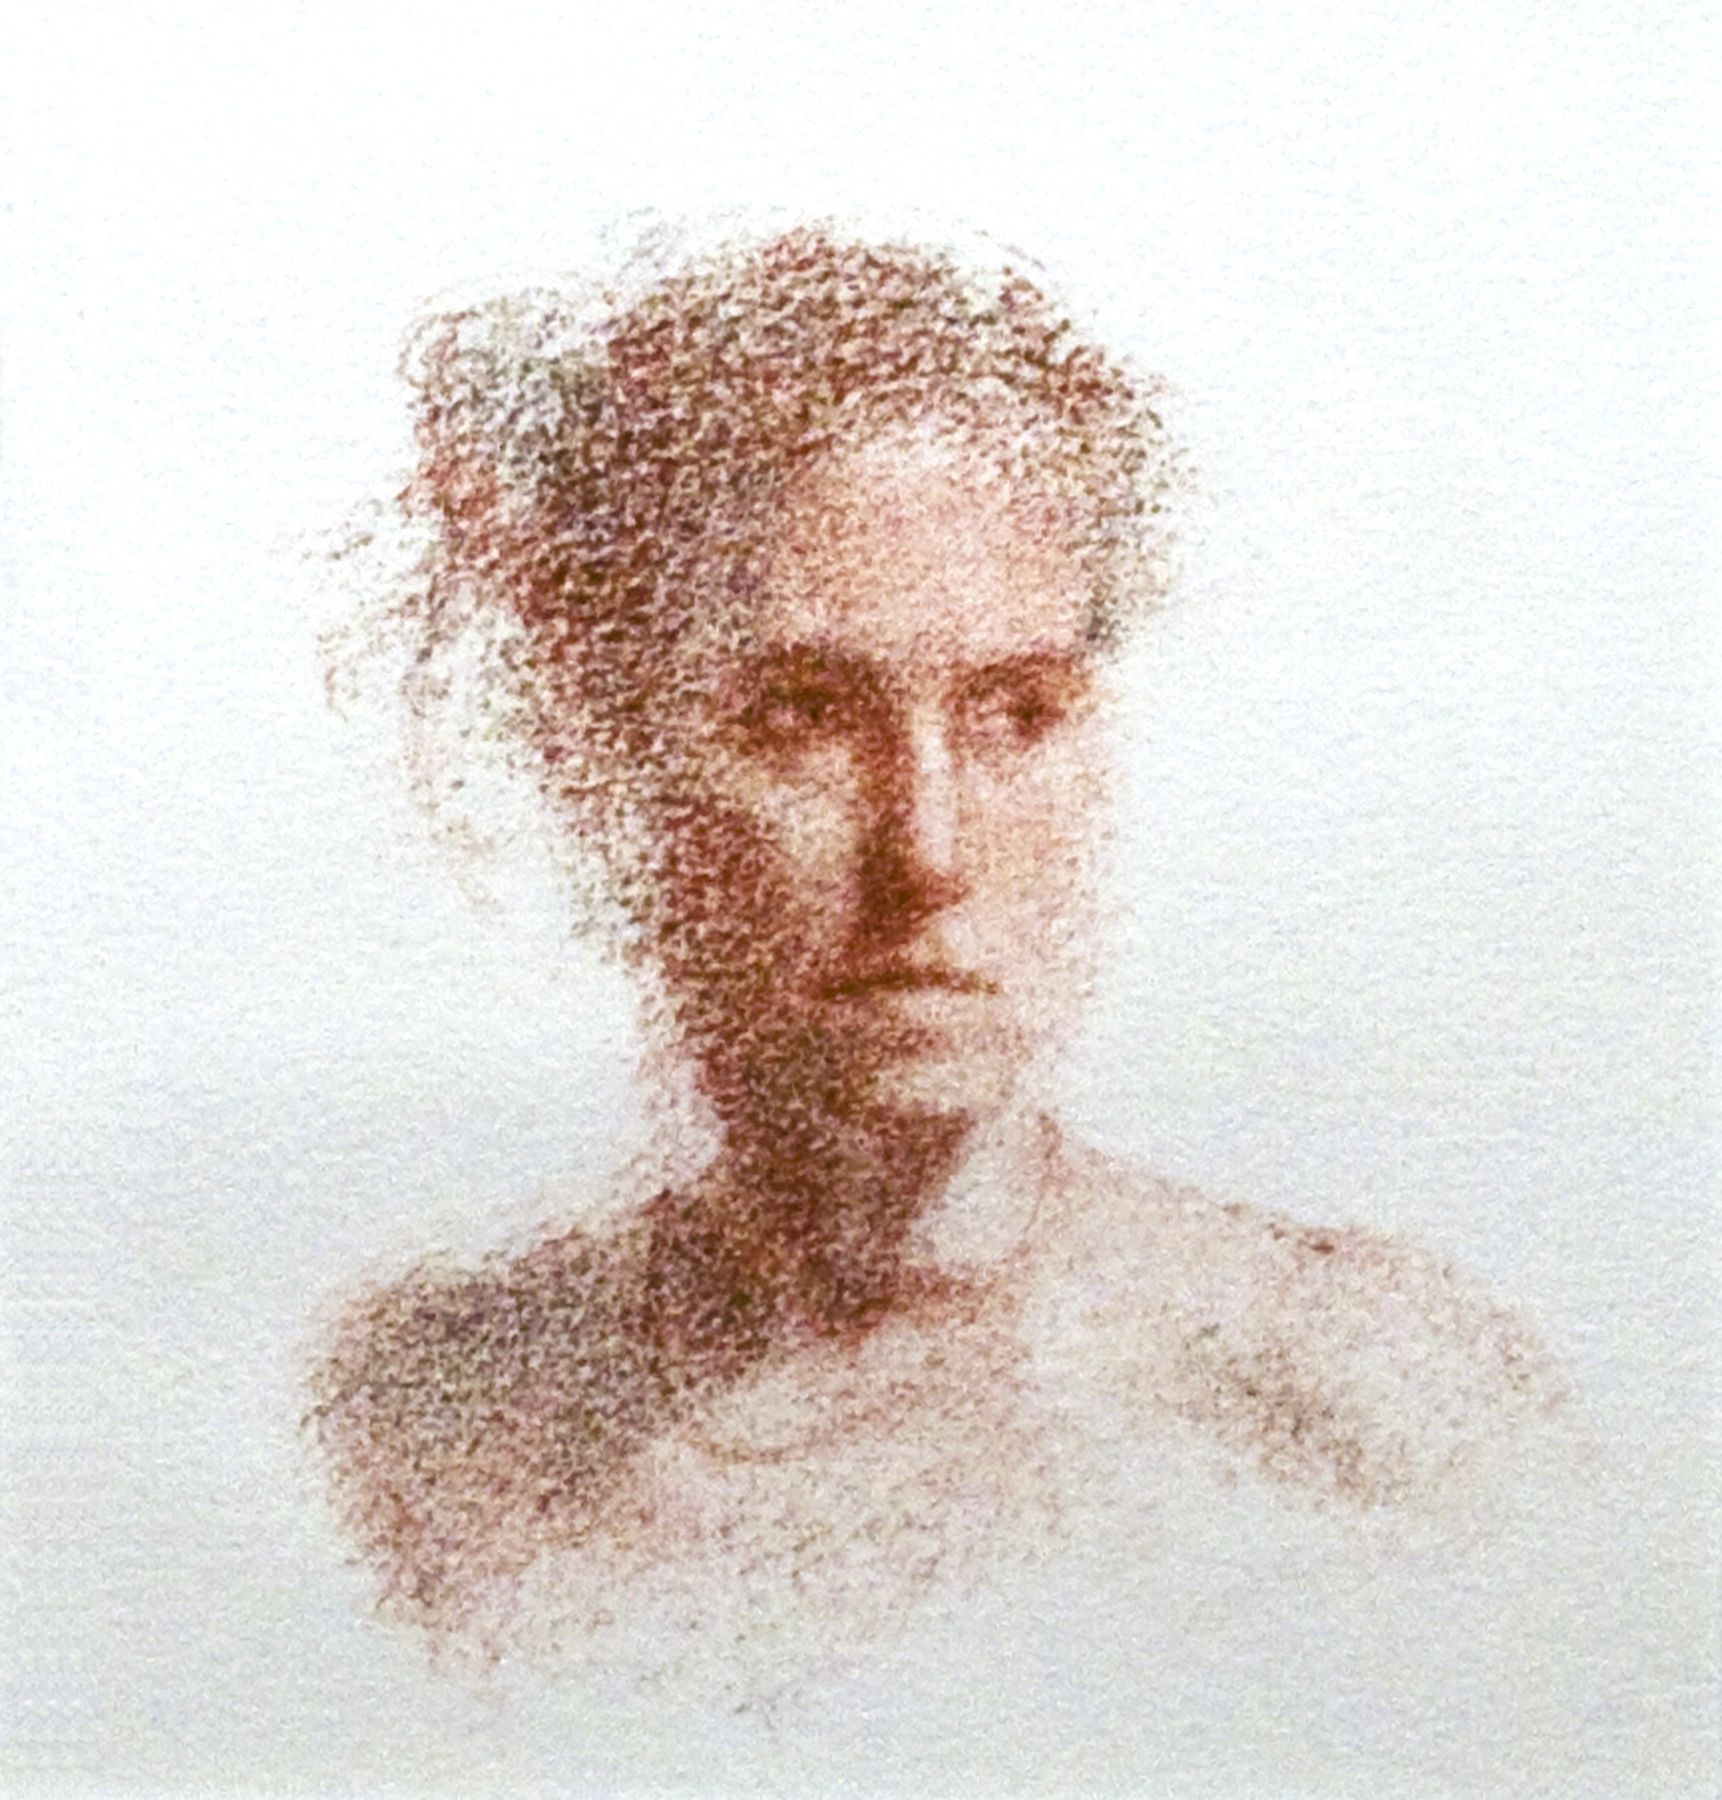 Lisa Bartolozzi, Strong Woman with Necklace, 2009, Conte and charcoal on paper, 6 x 5 3/8 inches